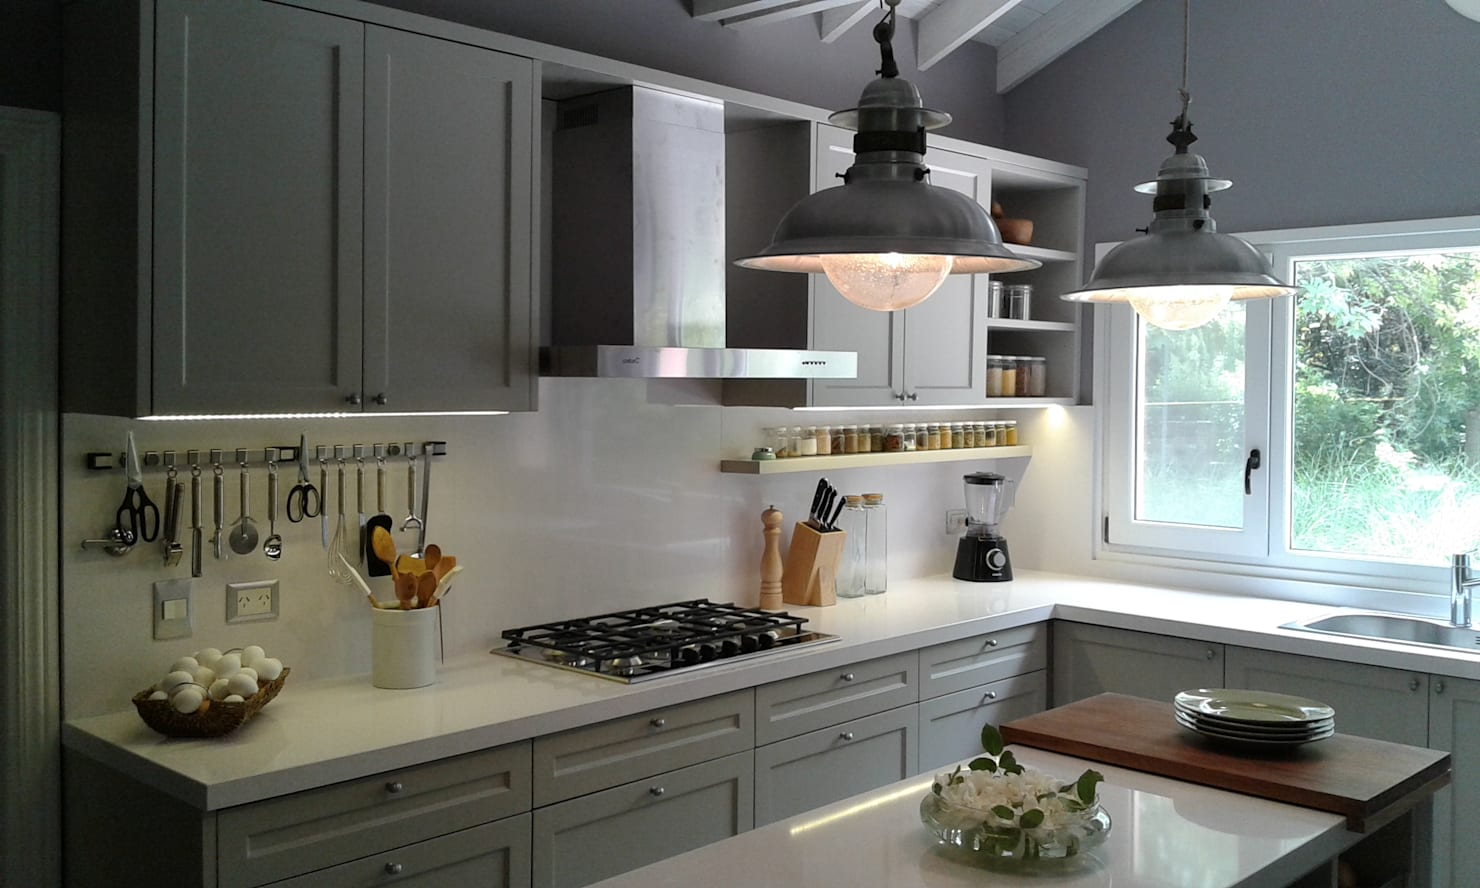 Kitchens: 6 ideas for a functional and beautiful kitchen!